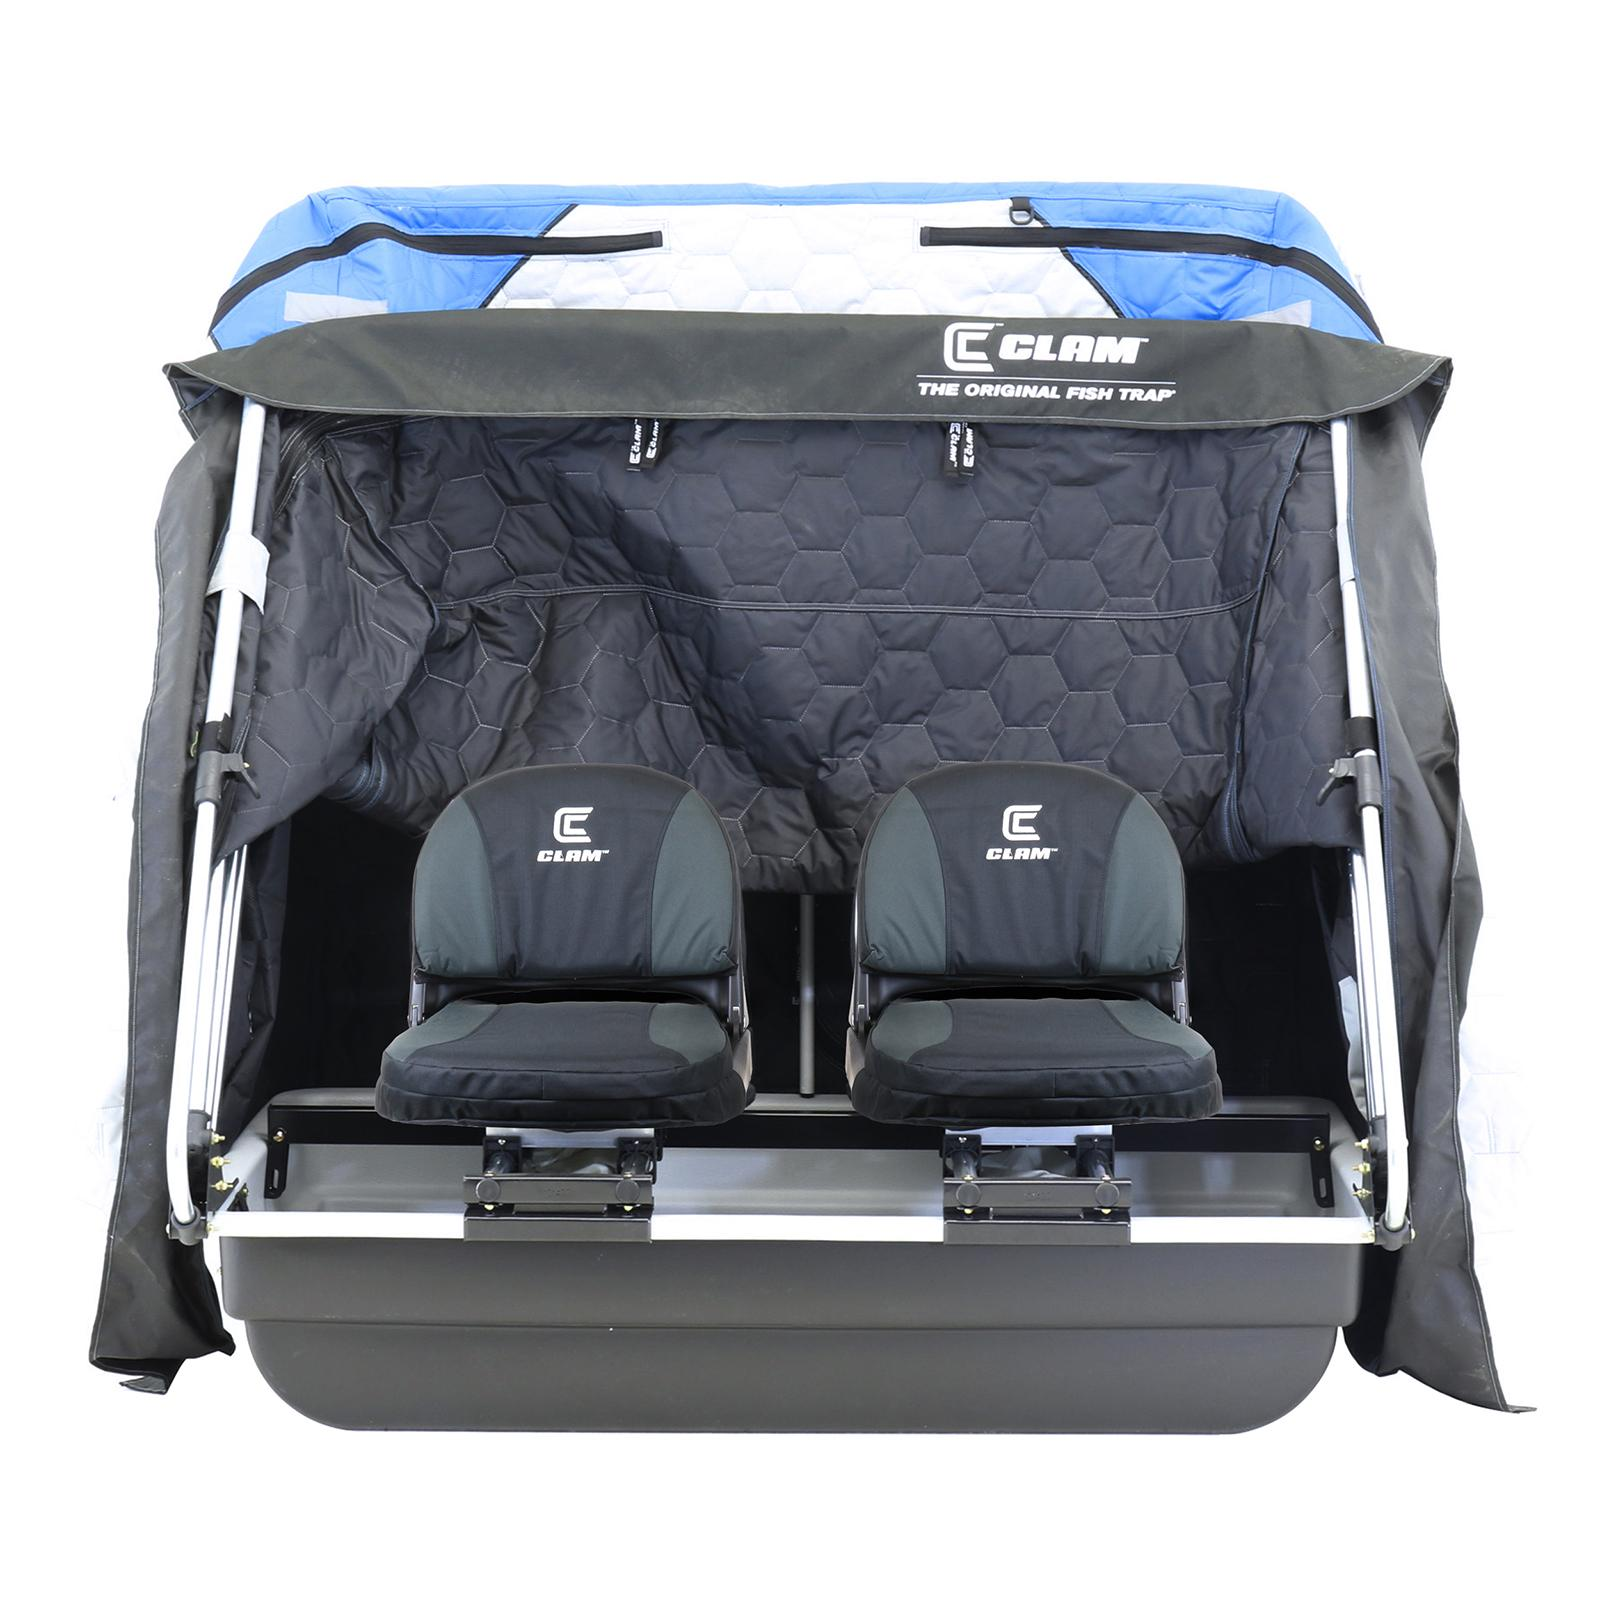 Clam Yukon XL Thermal Ice Shelter Front View with Seats and Cover Fully Opened